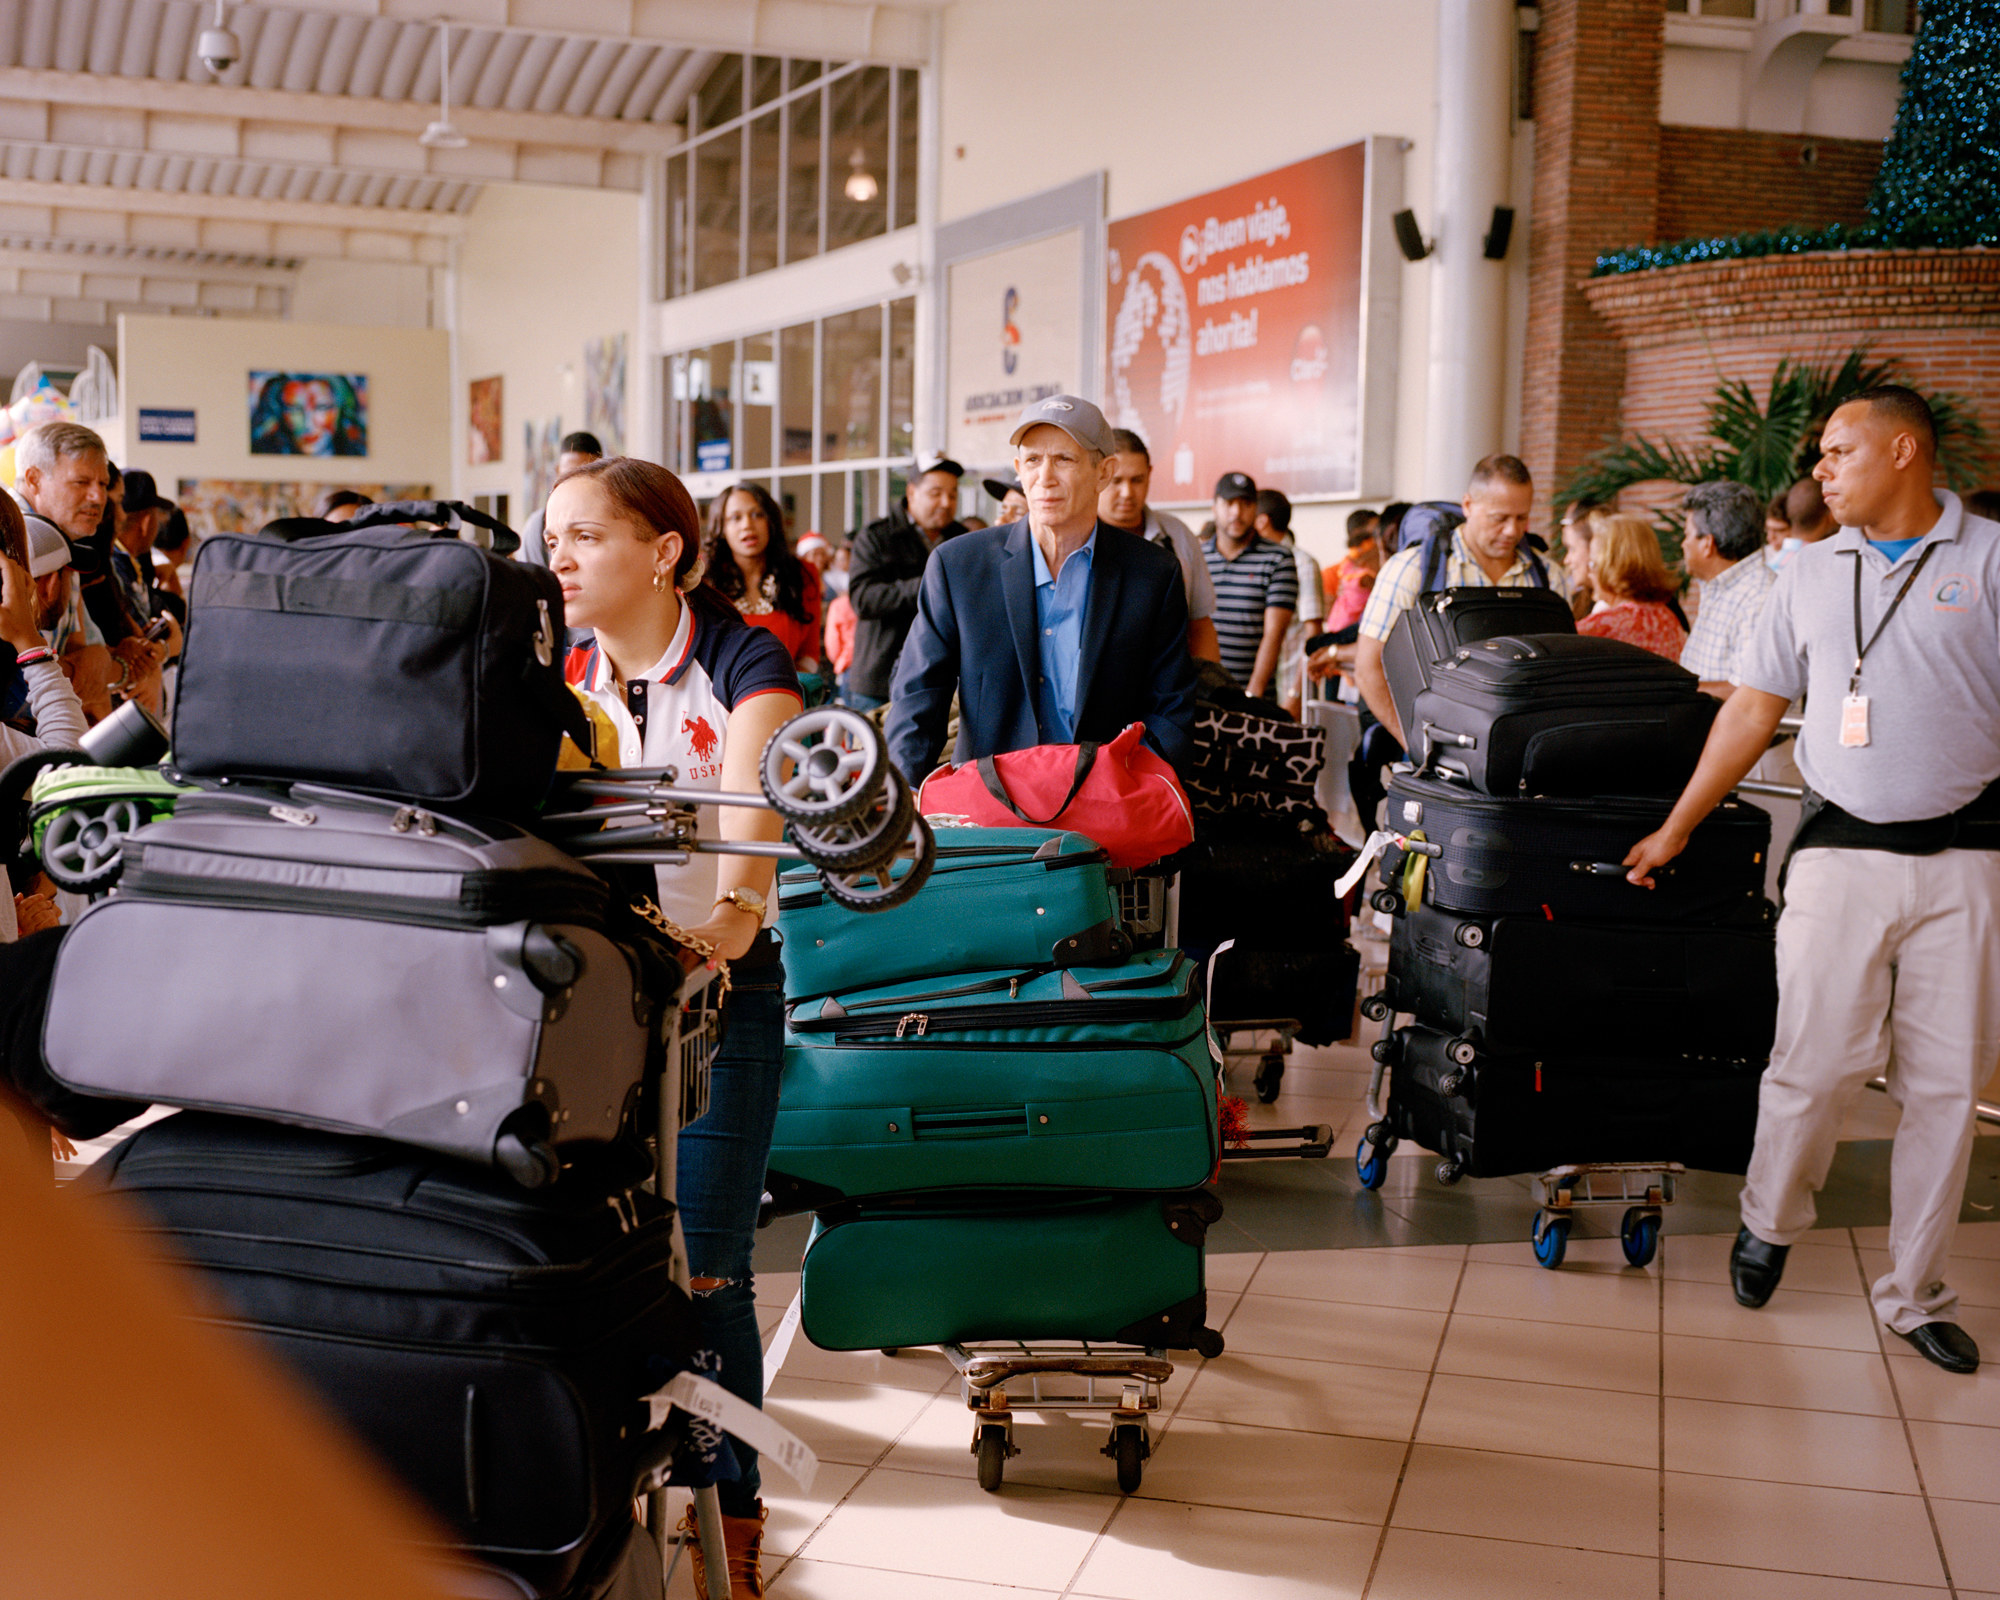 The photographer's father with a large baggage cart in an airport